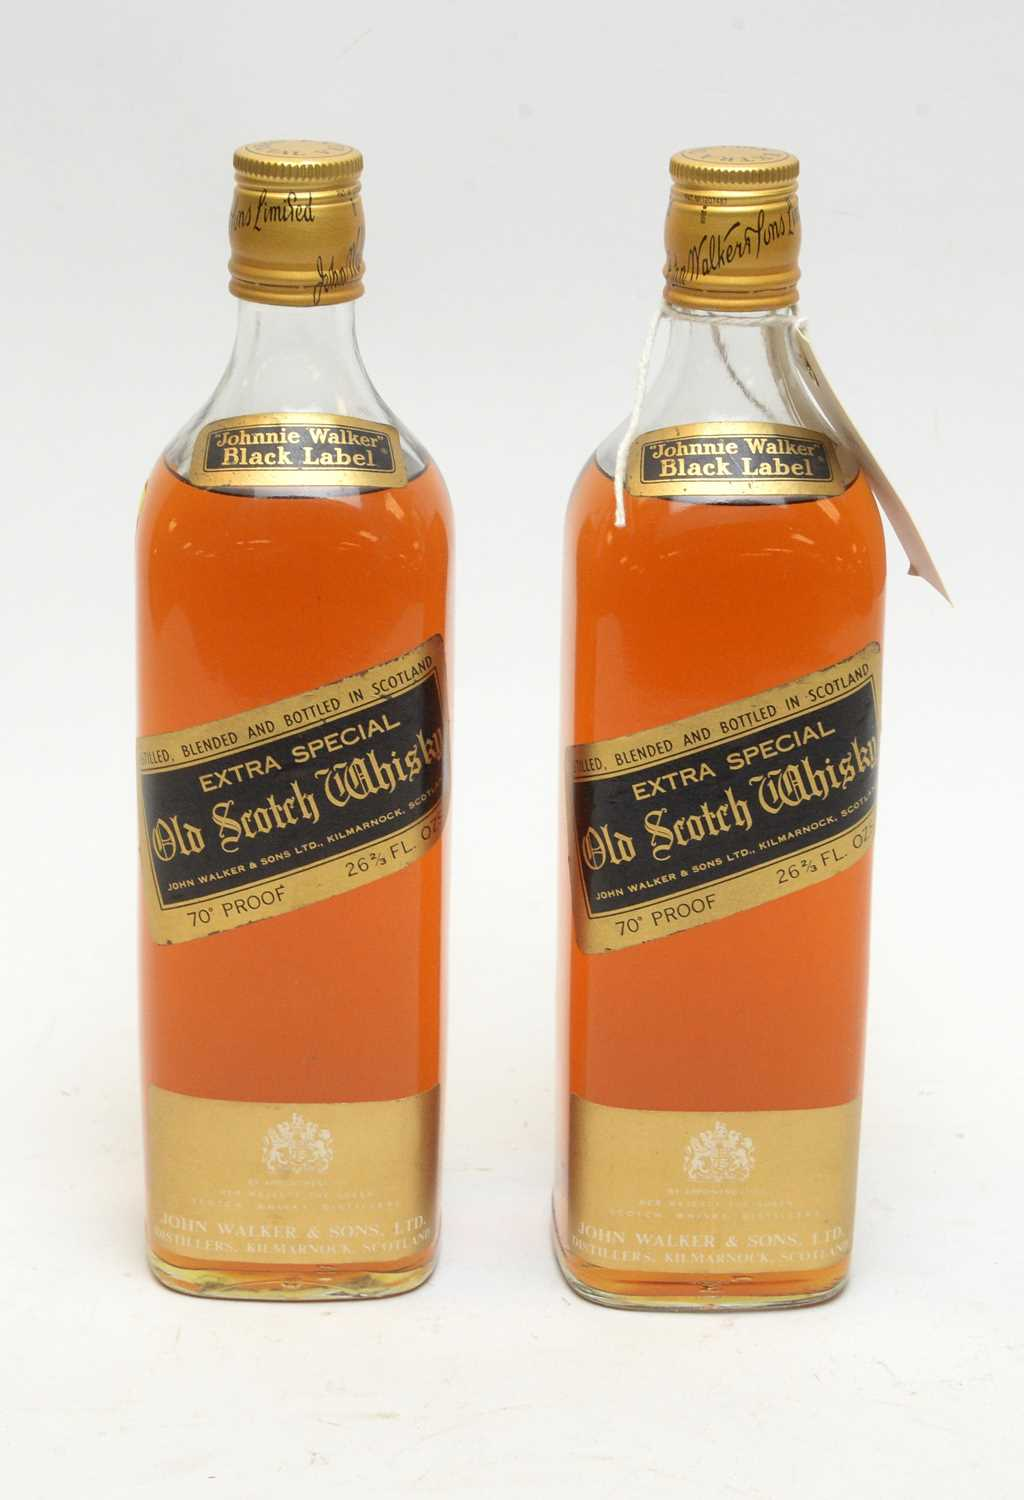 Lot 25 - Johnnie Walker Black Label Extra Special Old Scotch Whisky